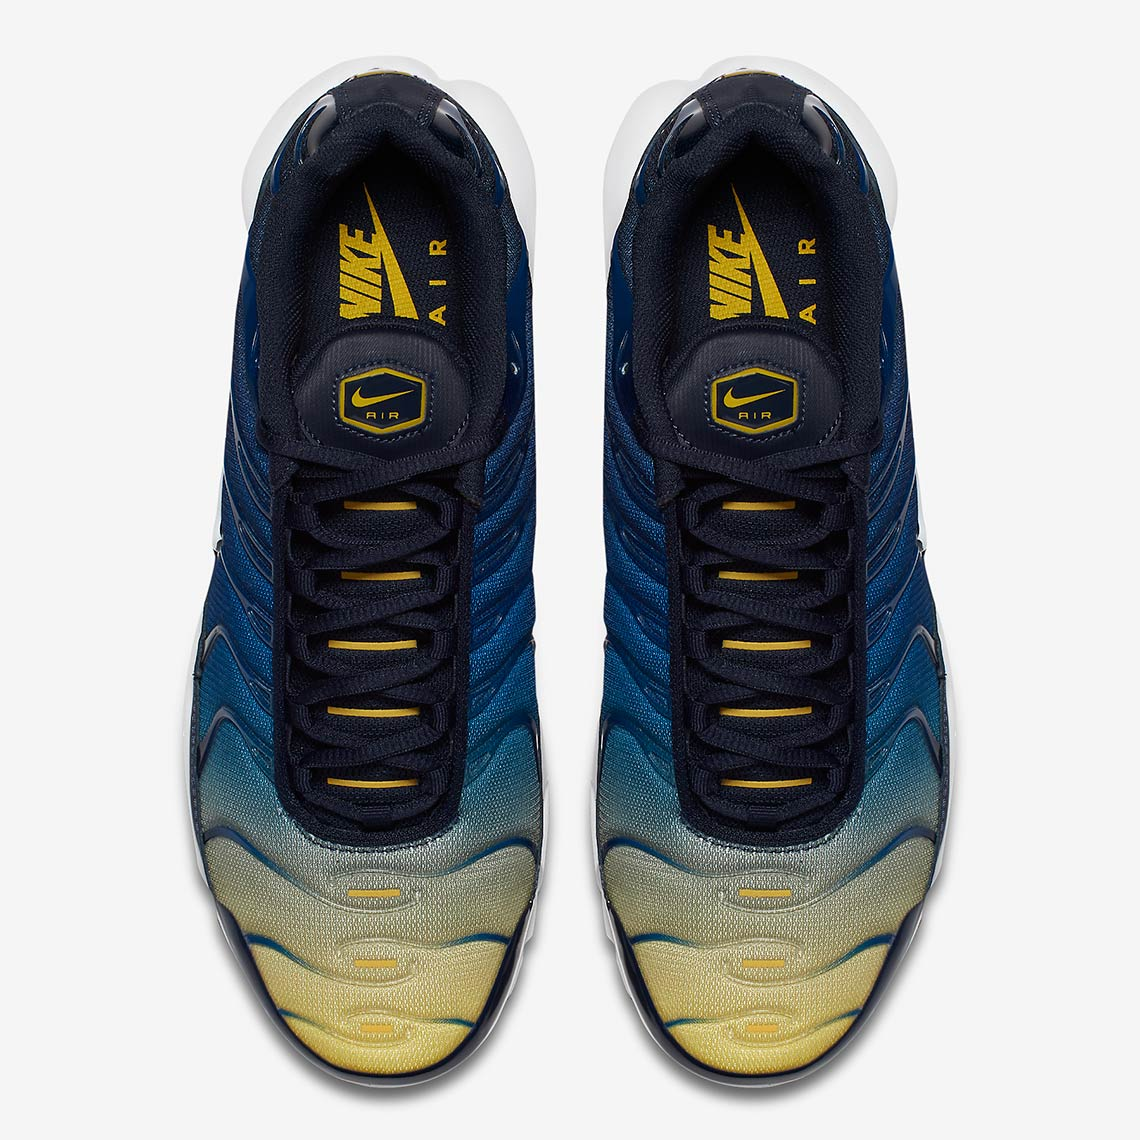 b6306f5a6f Nike Air Max Plus AVAILABLE AT Nike EU £134.95. Color: Black/Anthracite/Desert  Sand/Sand Style Code: 852630-026